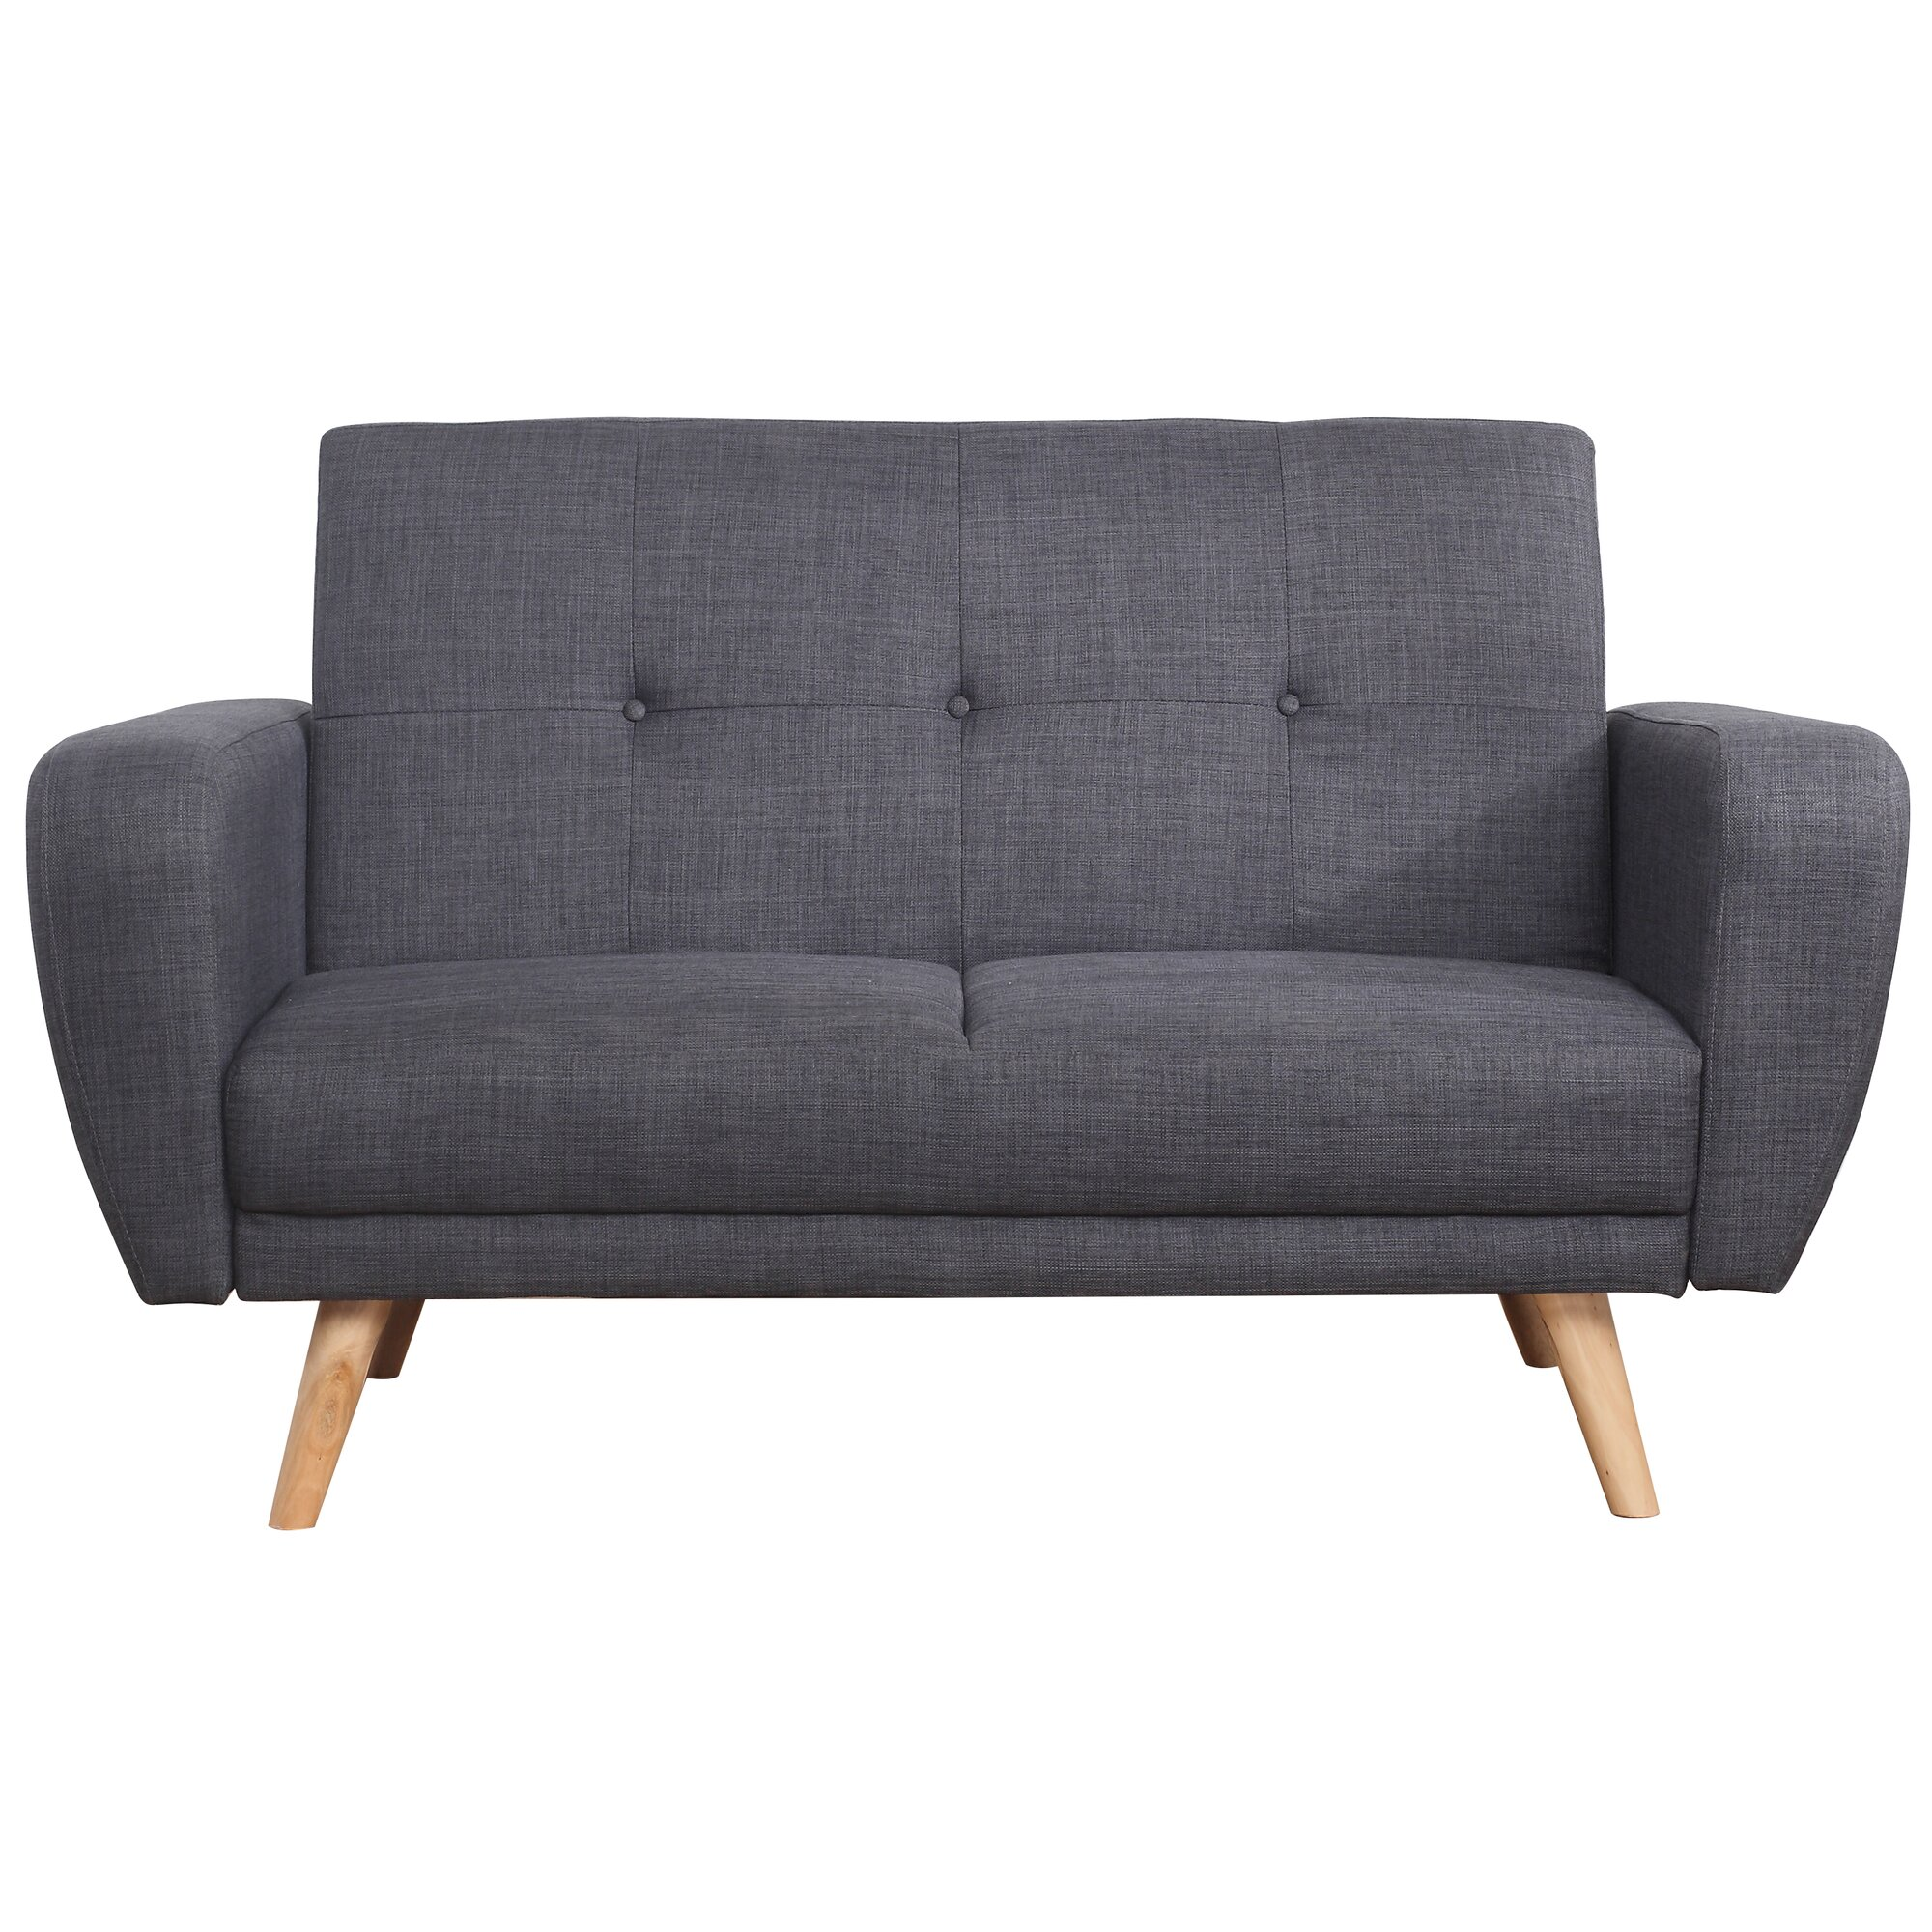 Clic Clac Sofa Bed Review